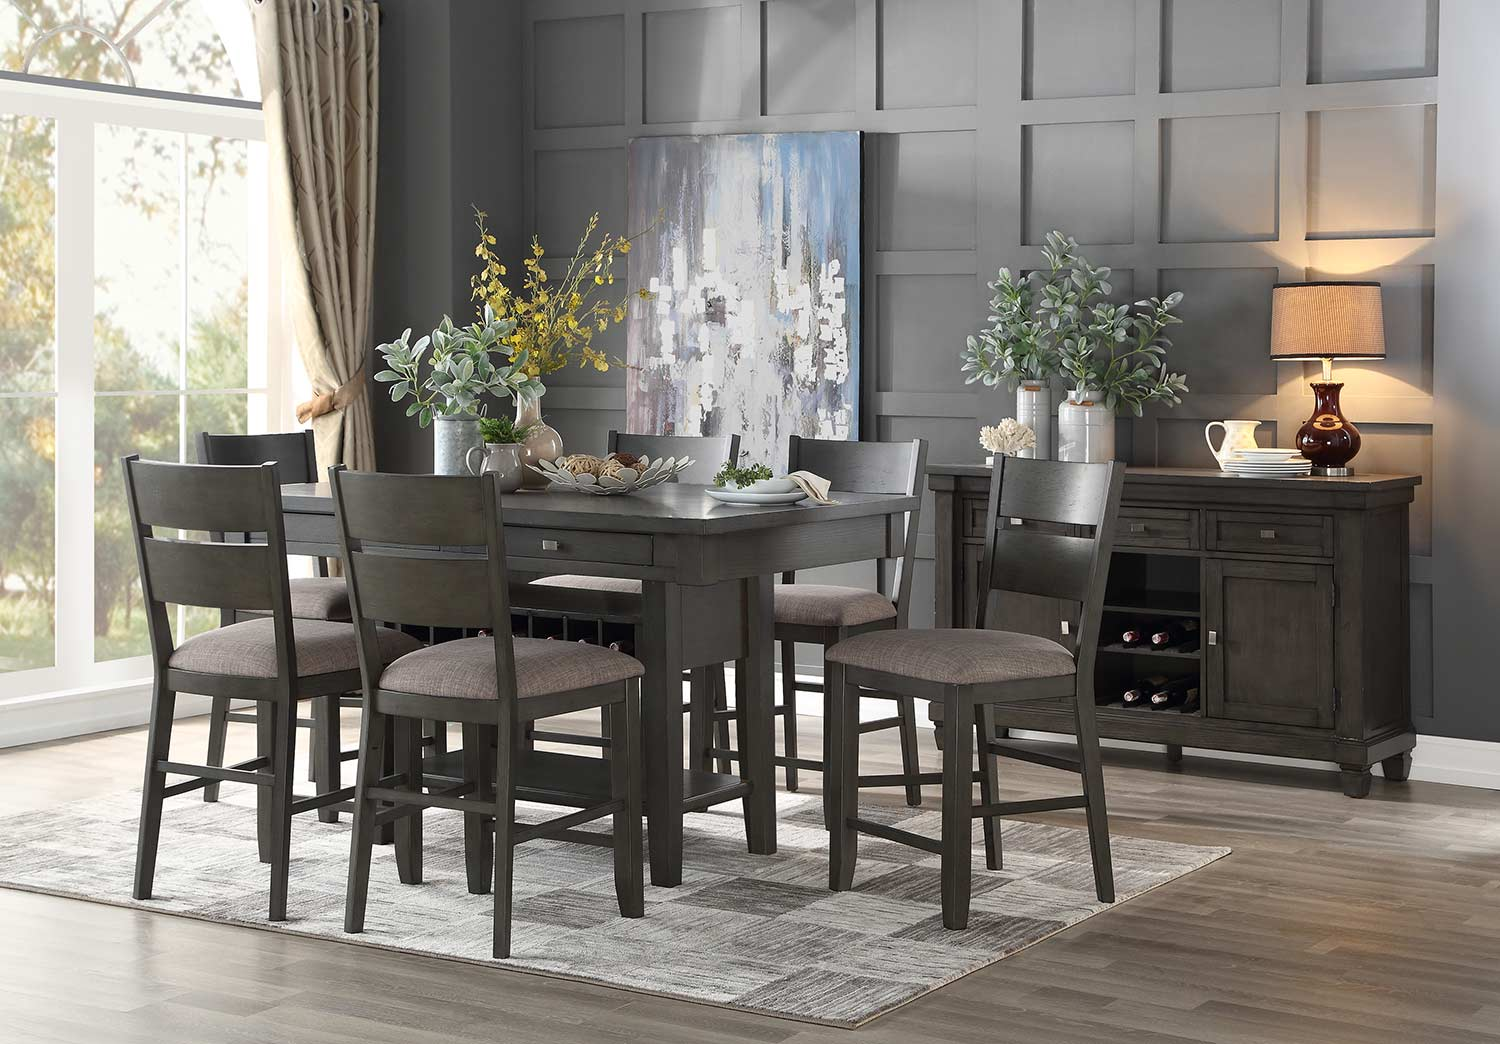 Homelegance Baresford Counter Height Dining Set - Gray